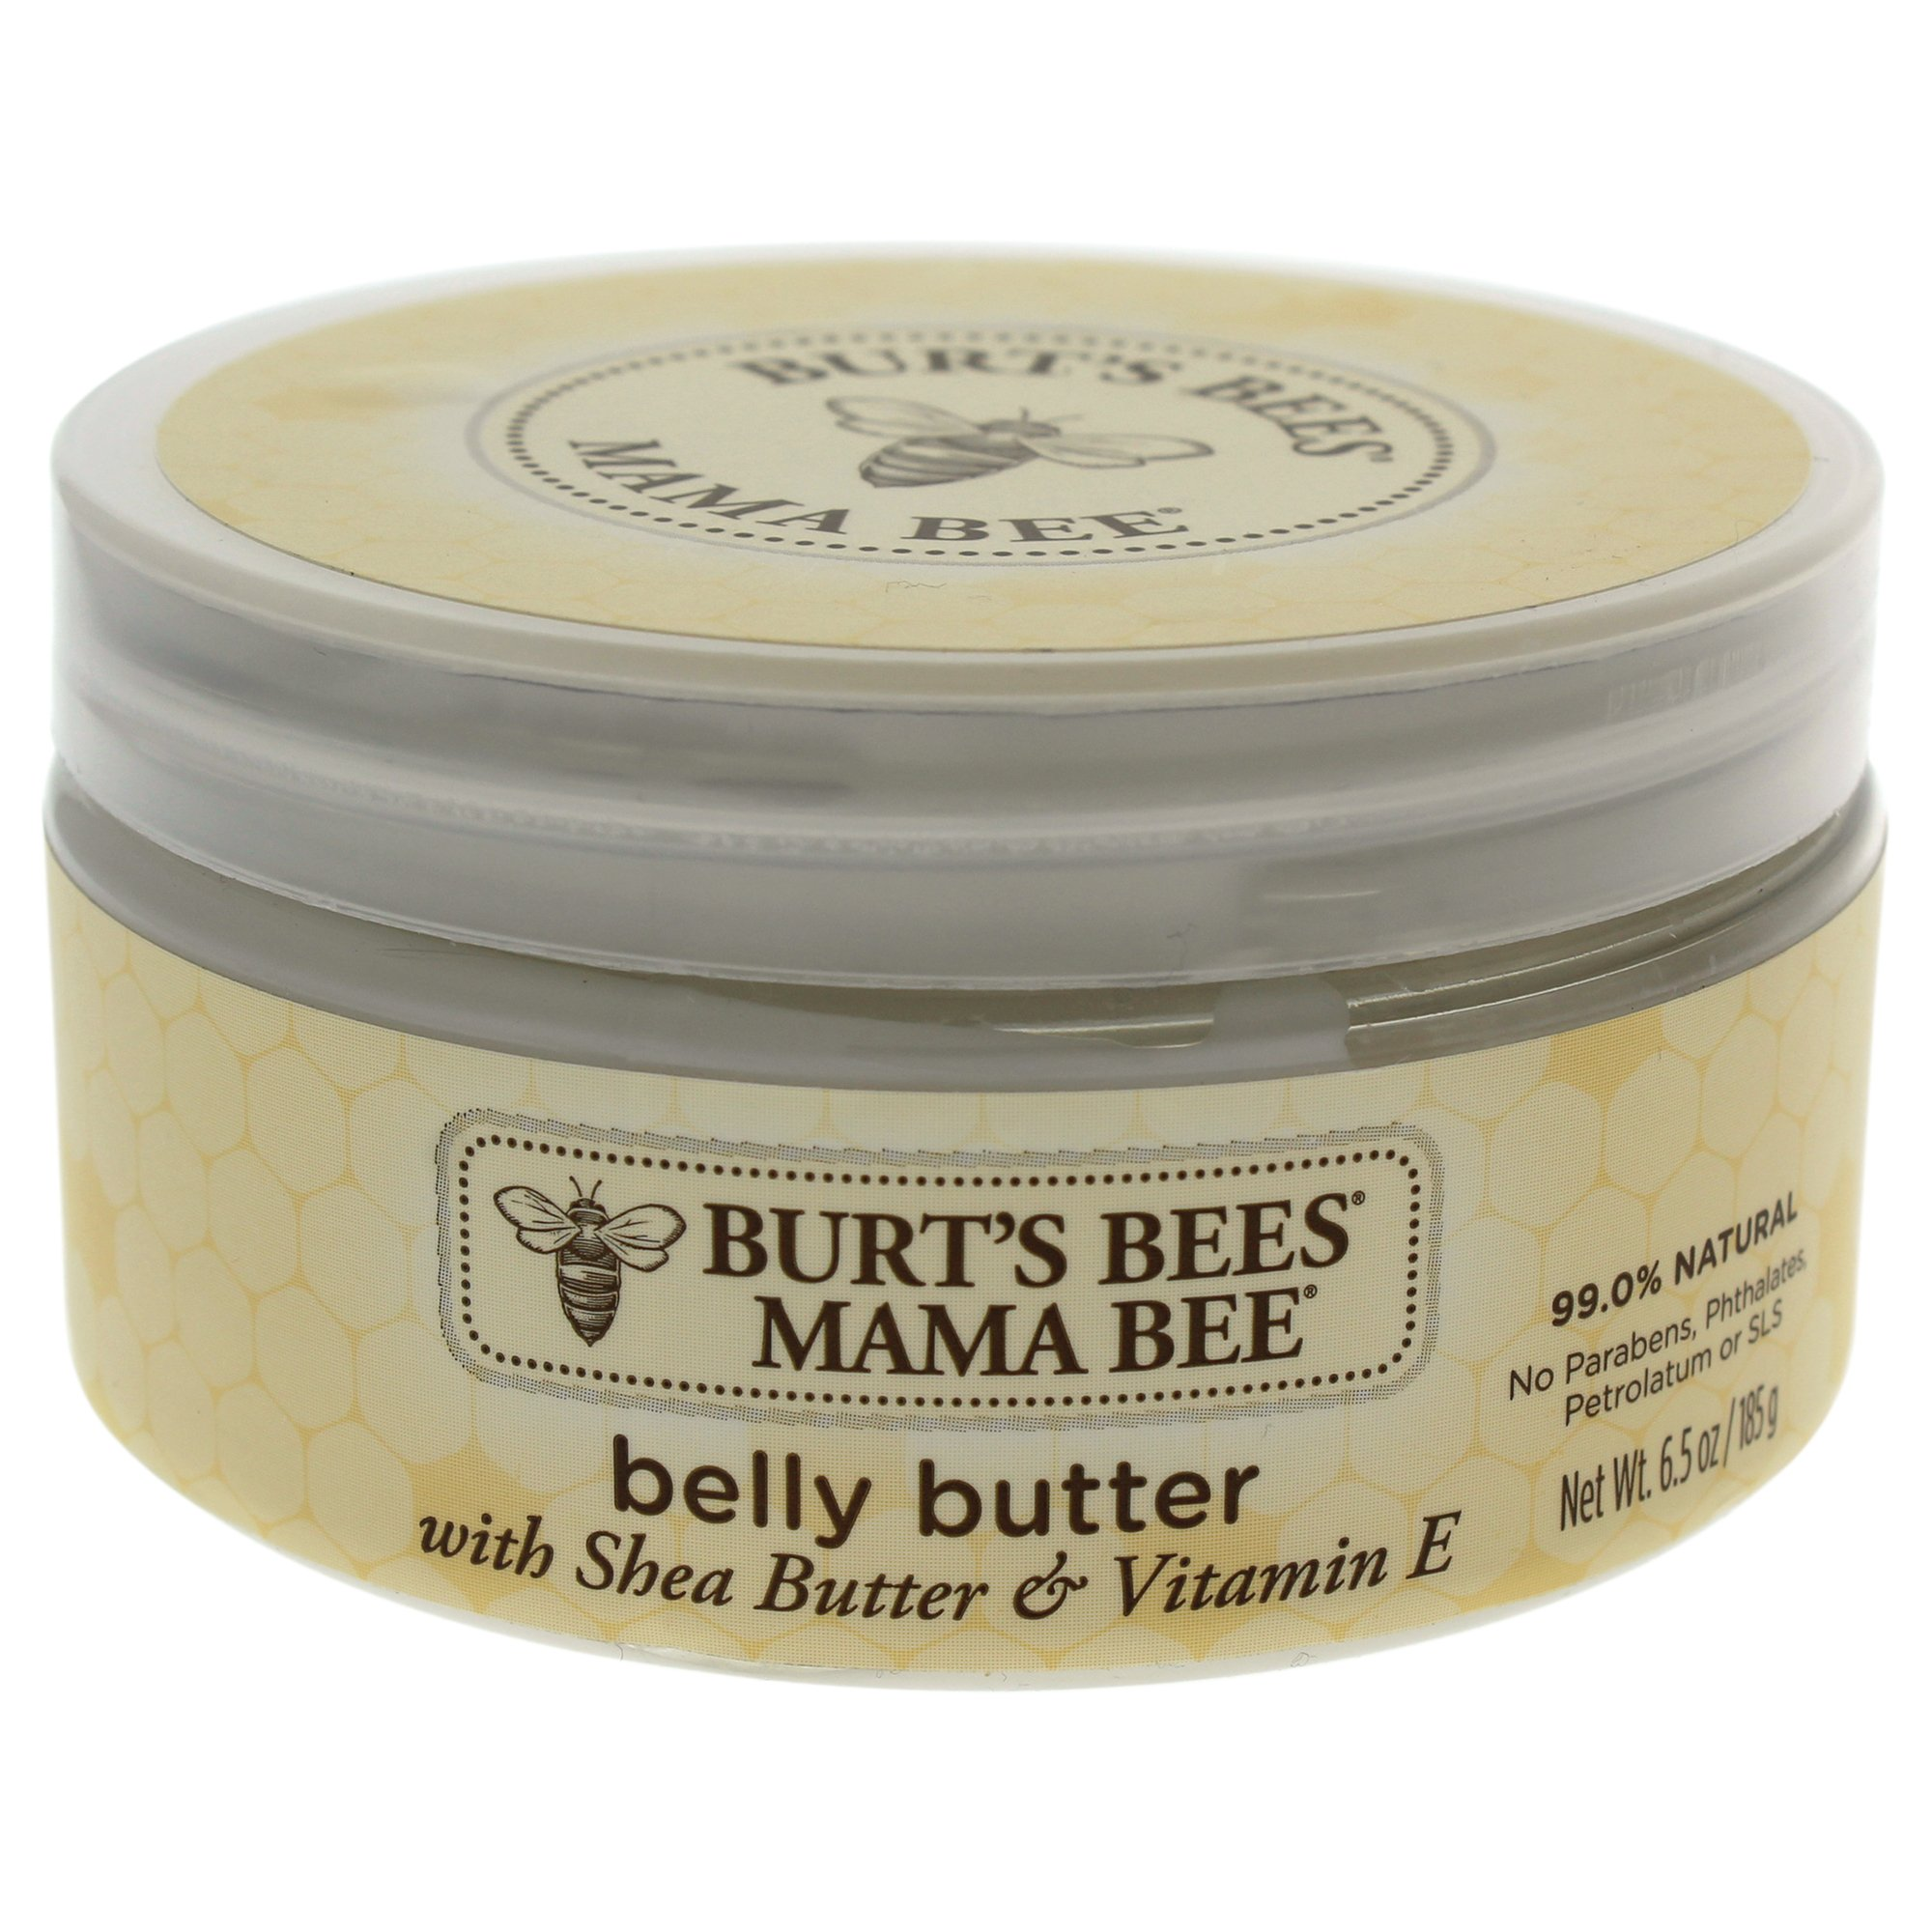 Burt's Bees Mama Bee  Belly Butter, Fragrance Free Lotion, 6.5 Ounces